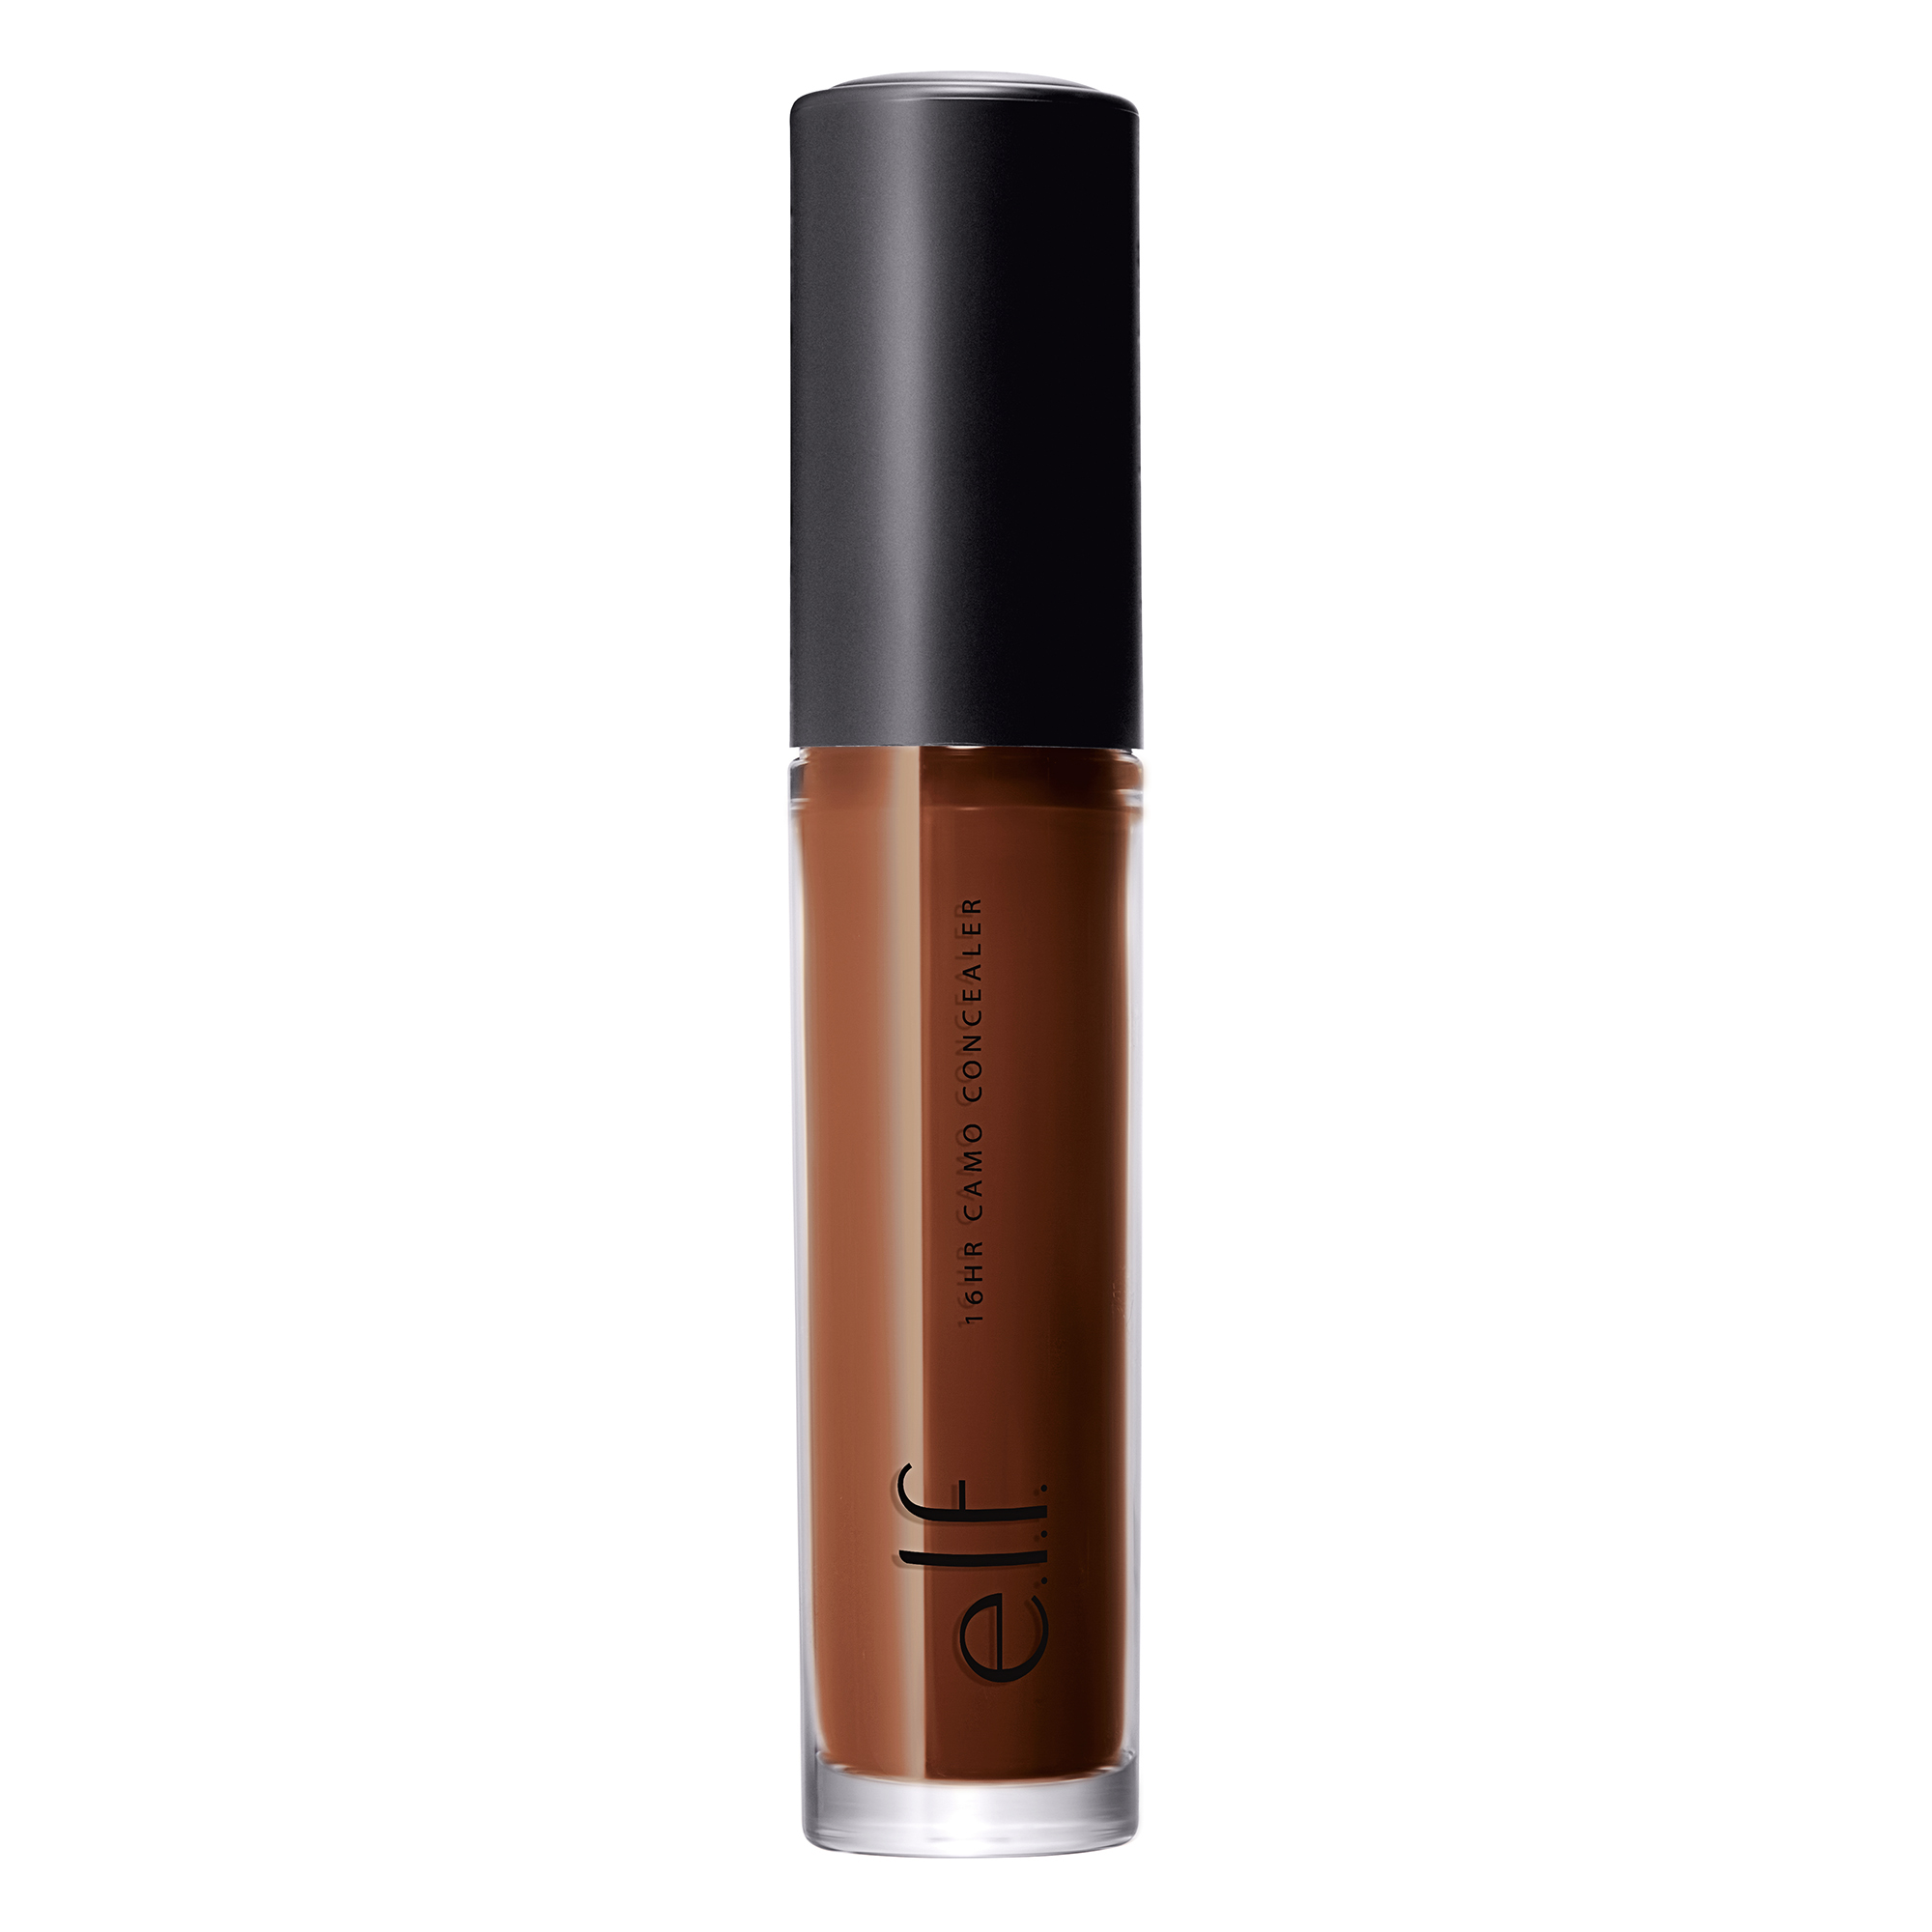 10 Long-Wearing Beauty Products to Up Your Date Night Confidence - Whether you're looking to cover pesky dark circles, conceal blemishes or contour, this buttery high-coverage formula comes in 18 do-it-all shades. Oh, and the price is right!